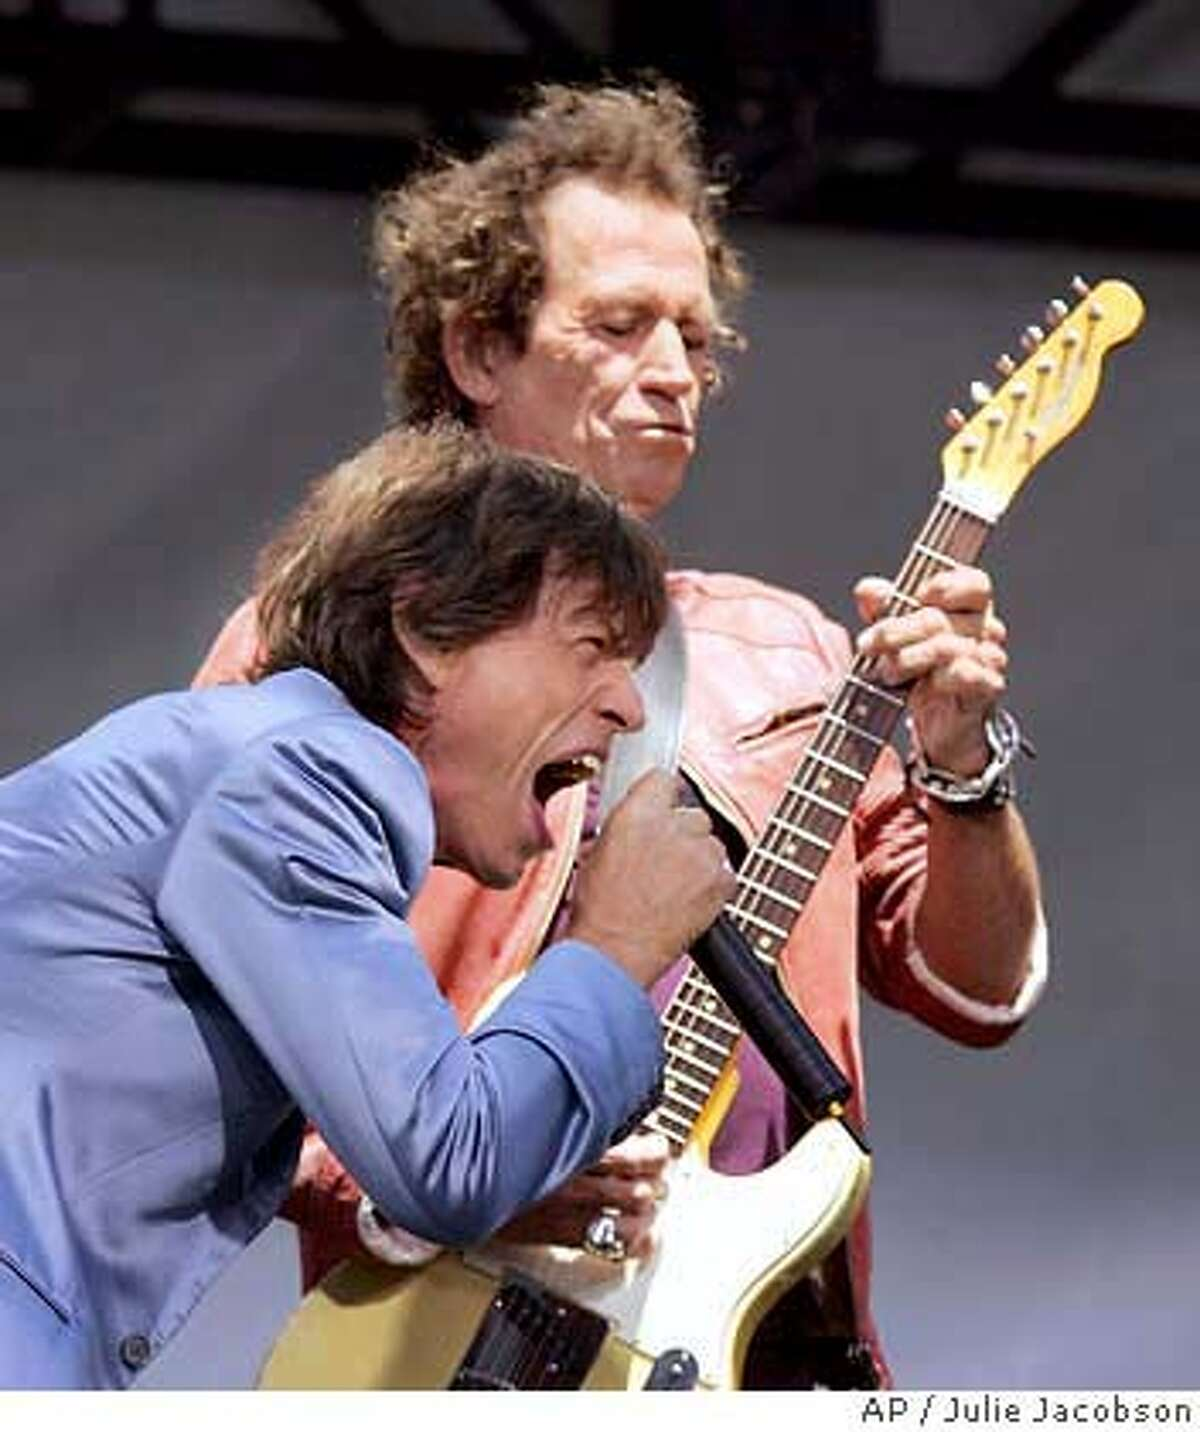 Mick Jagger,foreground, and Keith Richards of the Rolling Stones perform Tuesday May 10, 2005 at the Juilliard School of Music in New York. The group announced their new concert tour.(AP Photo/Julie Jacobson)